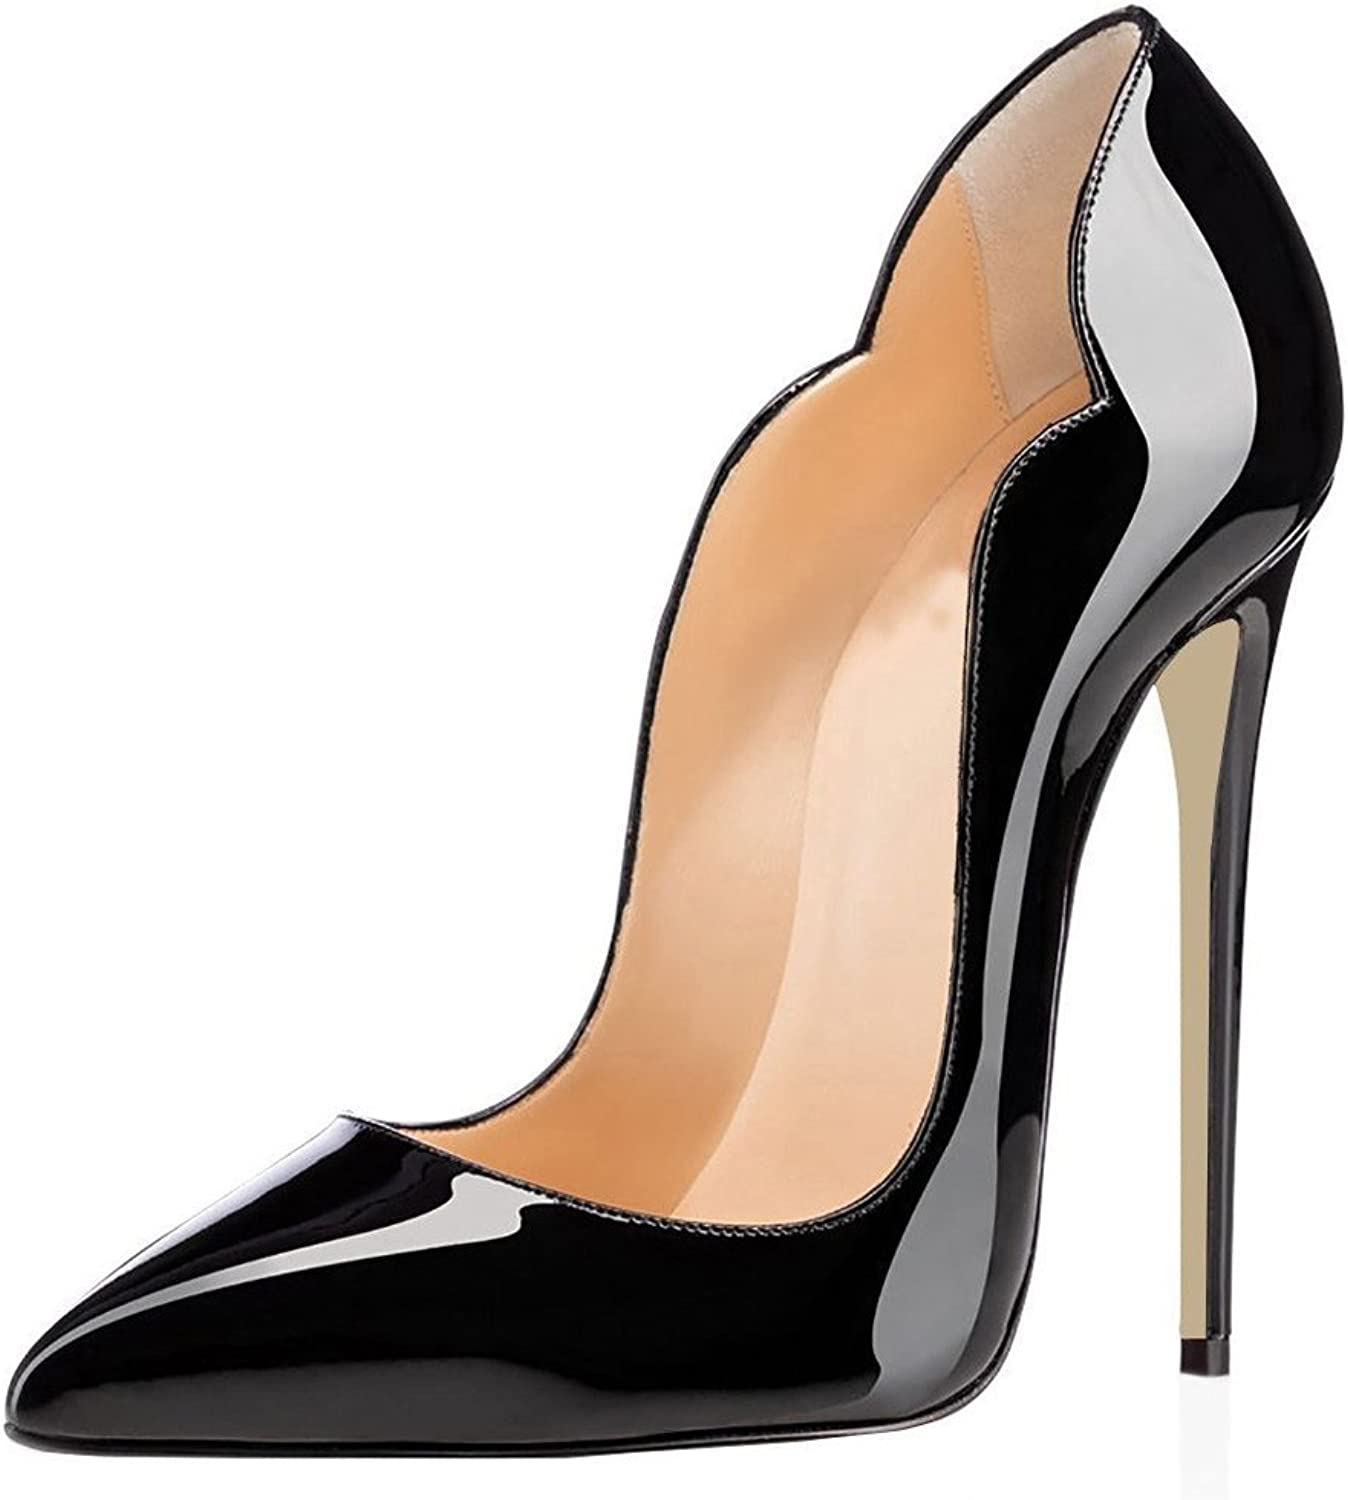 Comfity Pumps for Women, Sexy Pointed Toe High Heels Slip On shoes Party Wedding Pumps